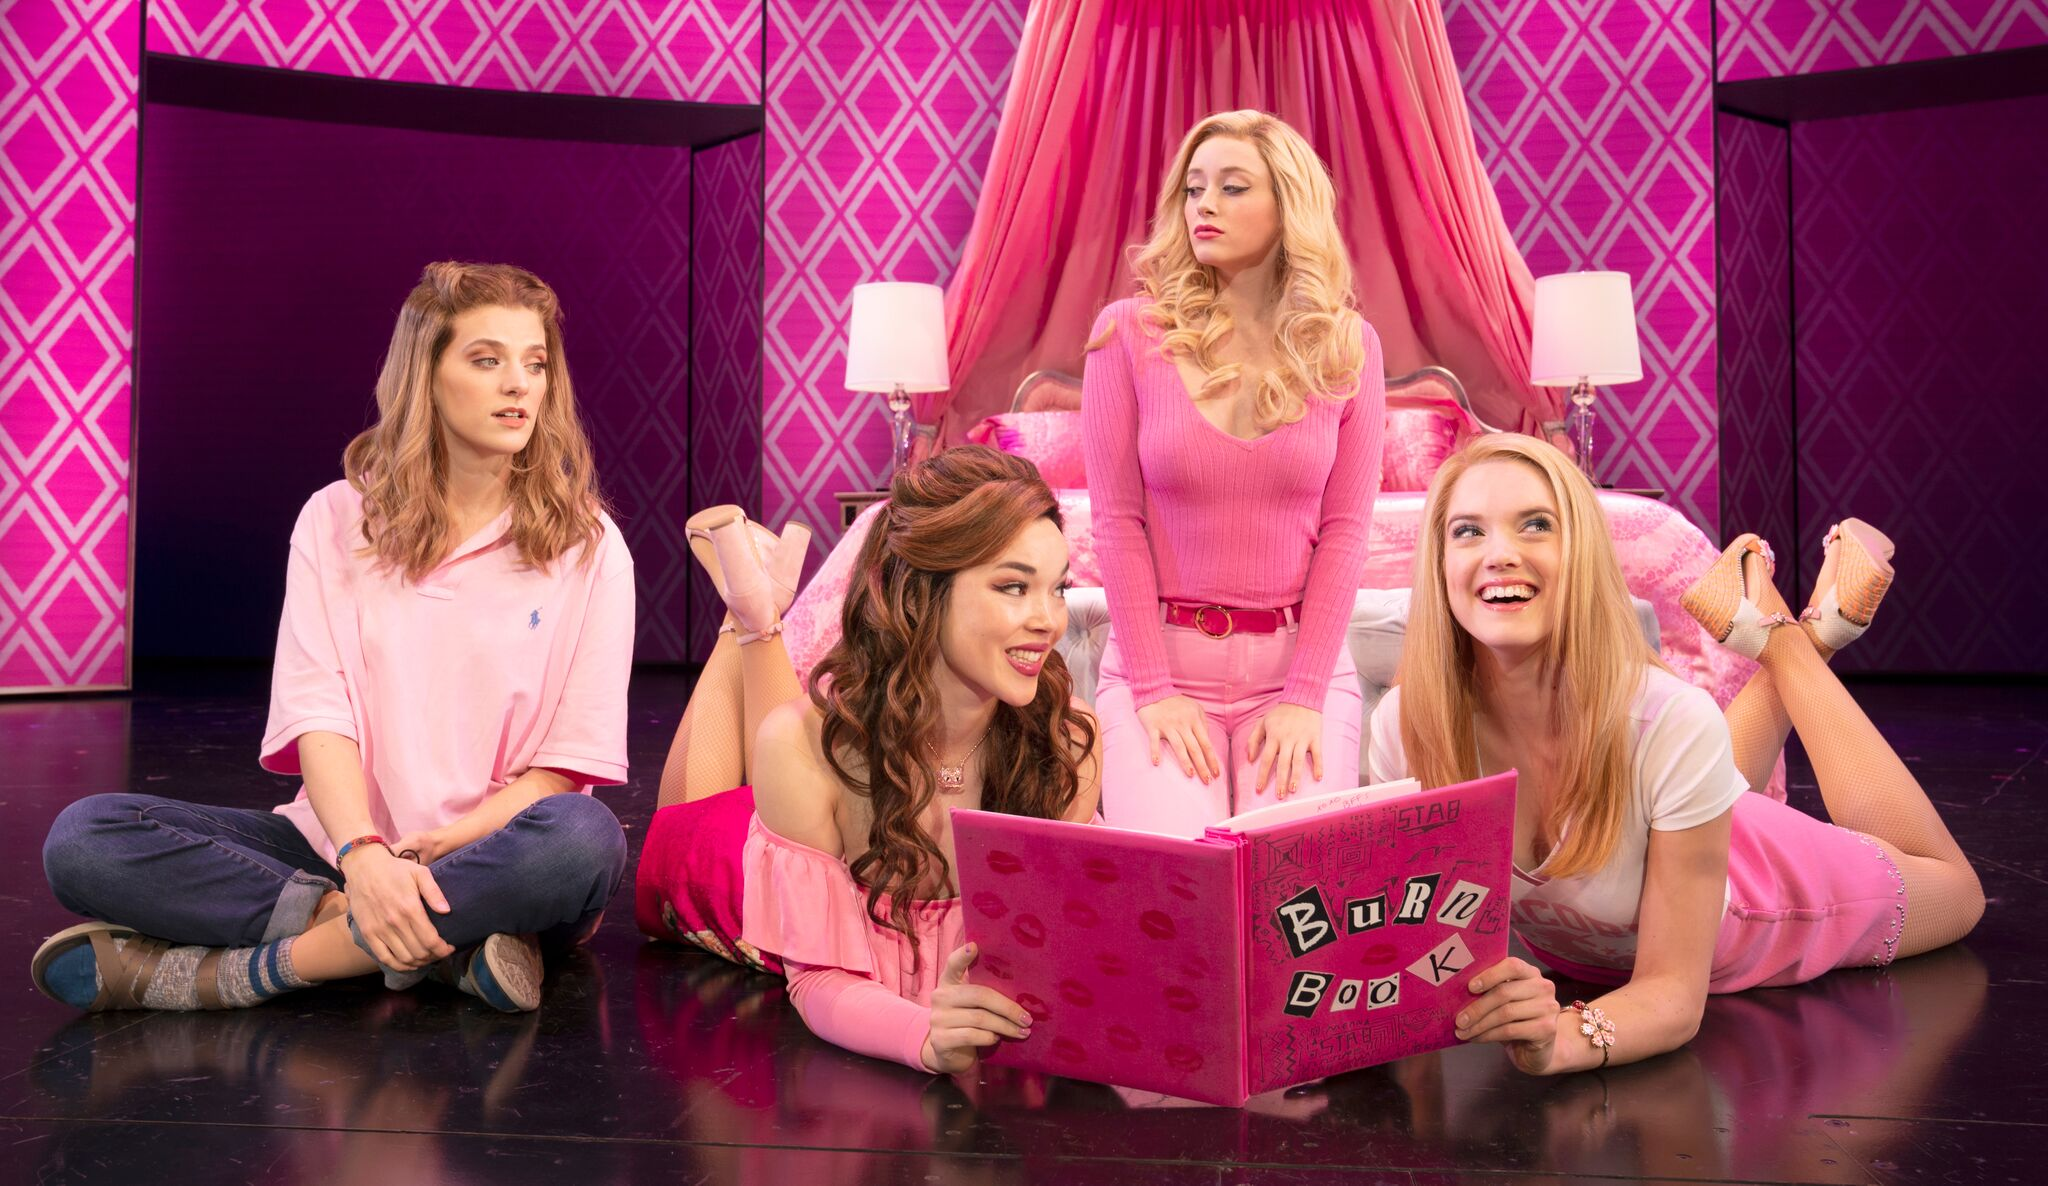 Mean Girls The Musical Is Fetch Or Maybe Grool Minnesotaplaylist Com Gretchen wieners is one of the main characters in mean girls. mean girls the musical is fetch or